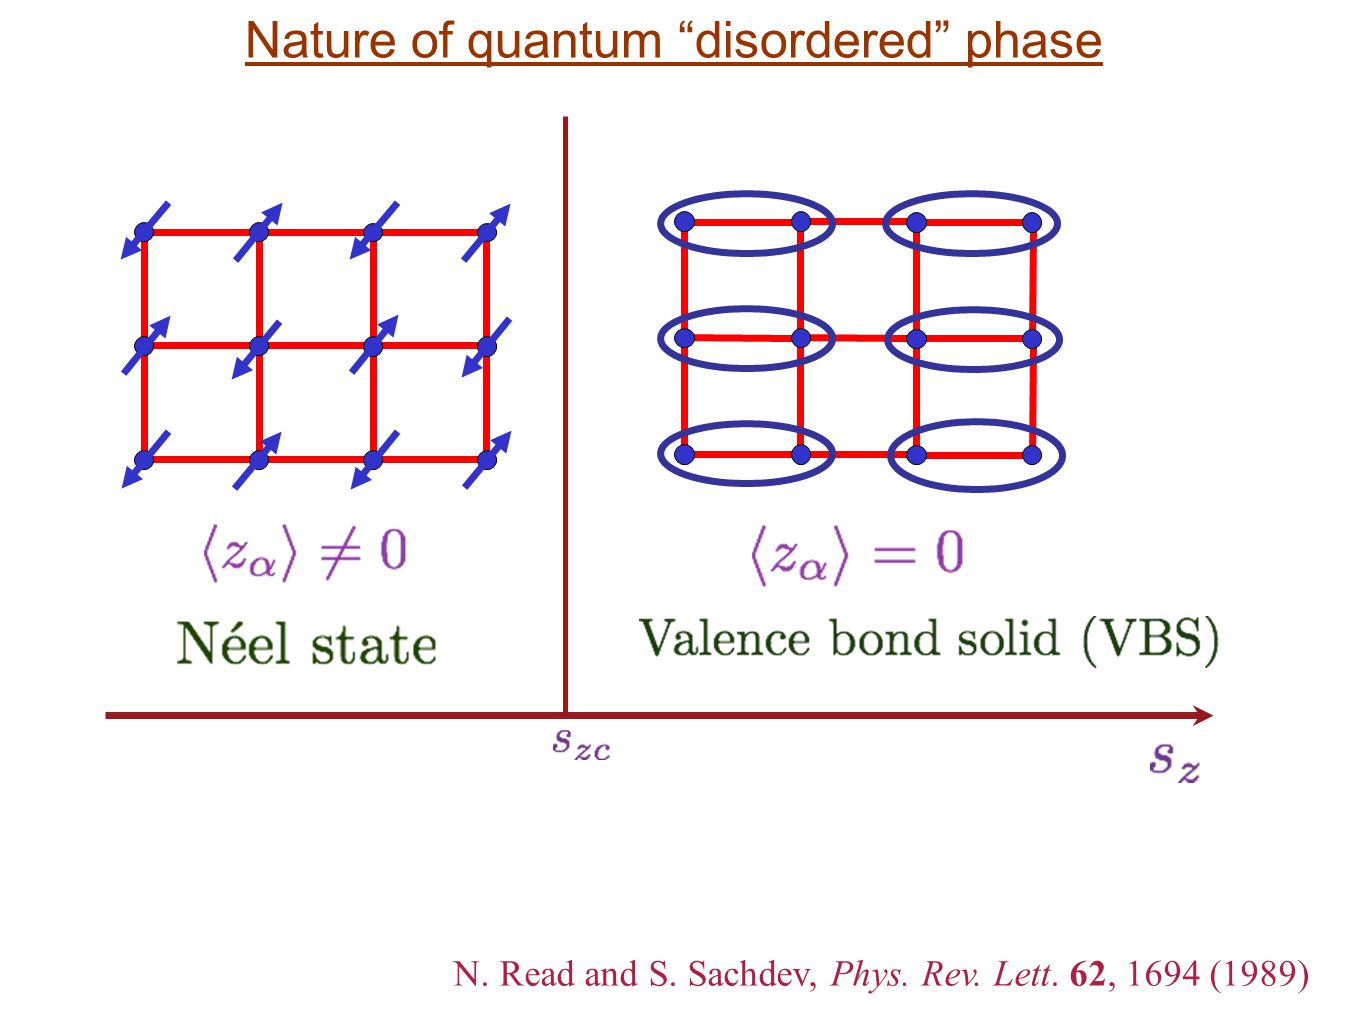 N. Read and S. Sachdev, Phys. Rev. Lett. 62, 1694 (1989) Nature of quantum disordered phase